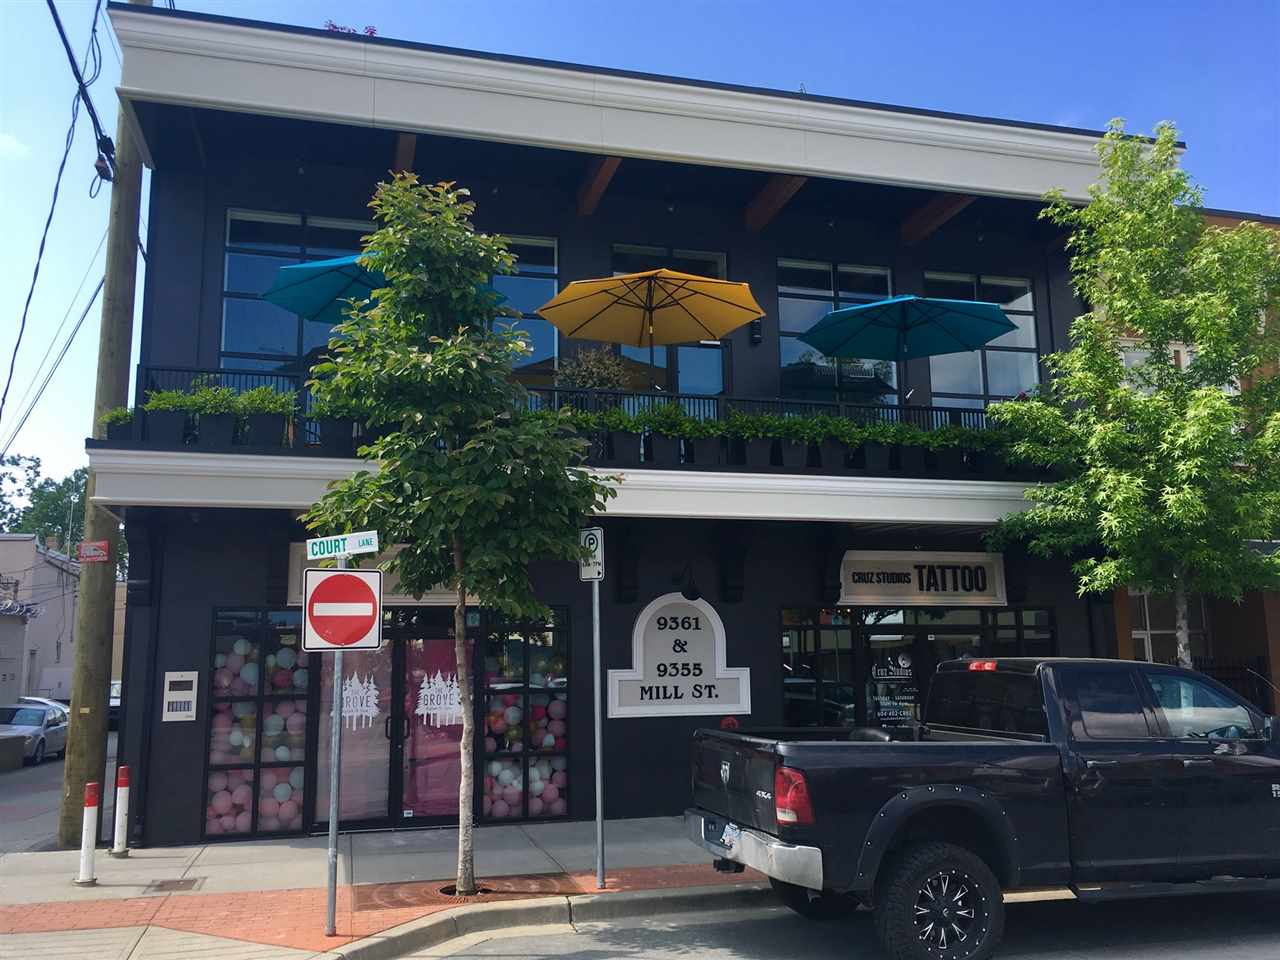 2 story commercial/residential building on a 4440 sf piece of land on popular Mill St. in the heart of downtown Chilliwack. Beautiful modern/vintage style building completely renovated in 2015 and shows like new! 3 ground floor commercial units with a gross area of 3.635 as well as 3 residential units on the 2nd floor with a total gross area of 3,715 sf including a 3 bedroom suite that shows like a penthouse. Fully tenanted. C3 zoning. Tons of foot traffic. Parking at the back for customers and tenants as well. An excellent opportunity to live in and collect rent! Call for more details!